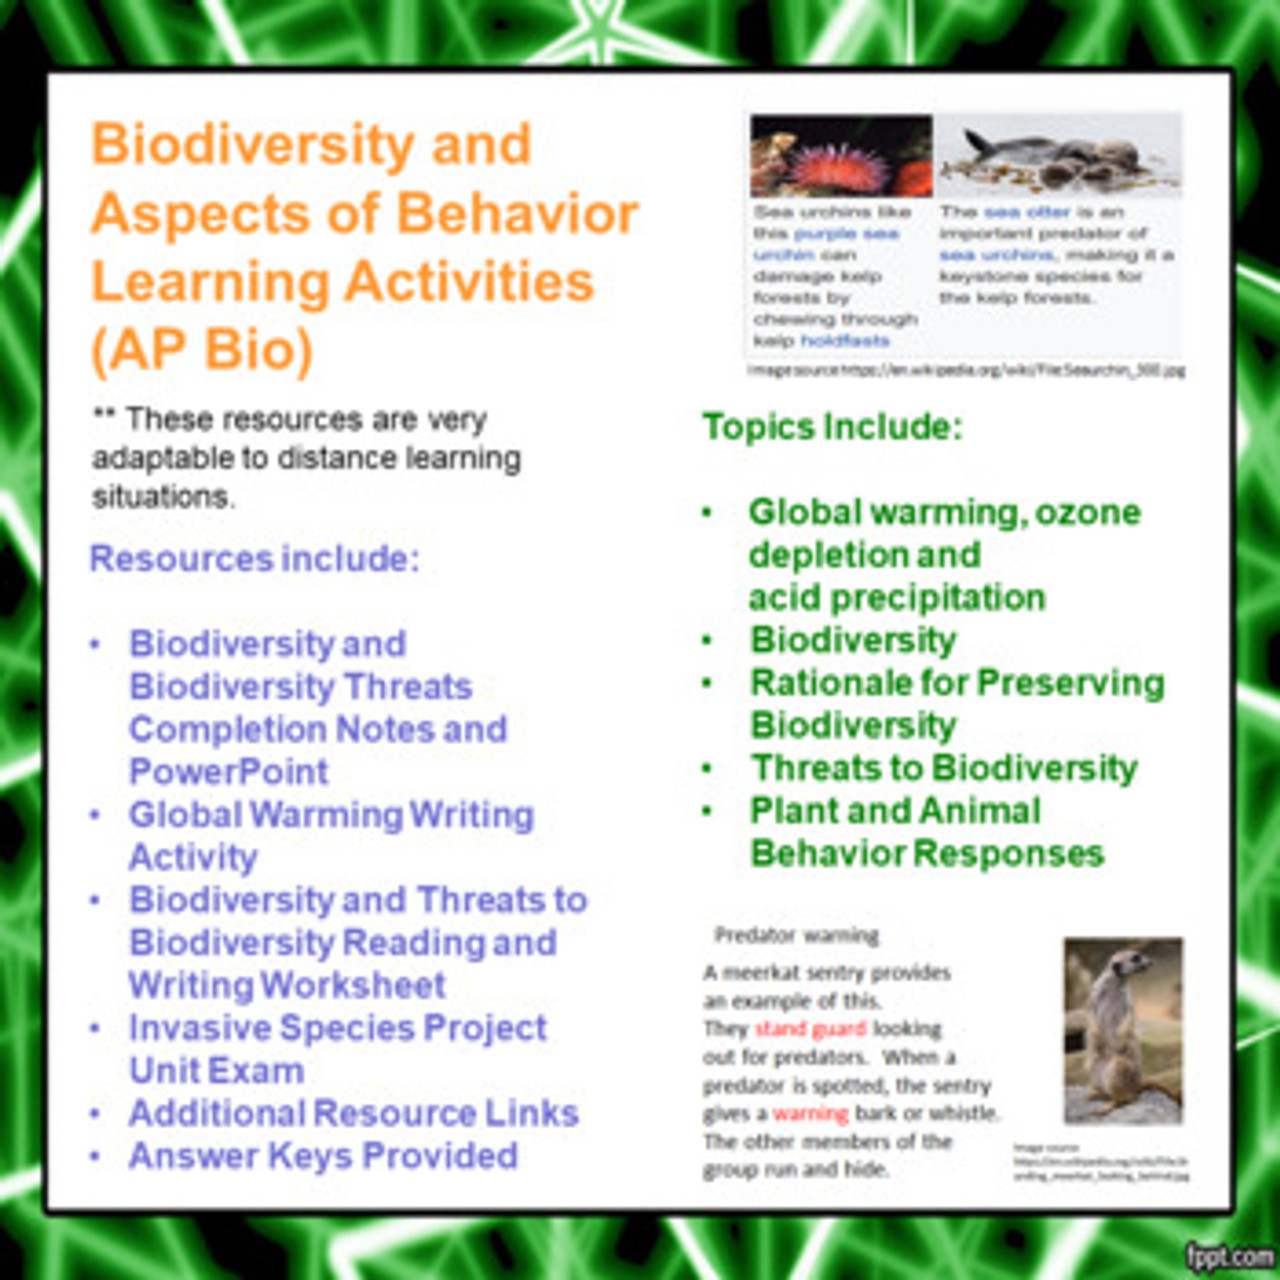 Biodiversity and Aspects of Behavior Learning Activities for AP Biology (Distance Learning)